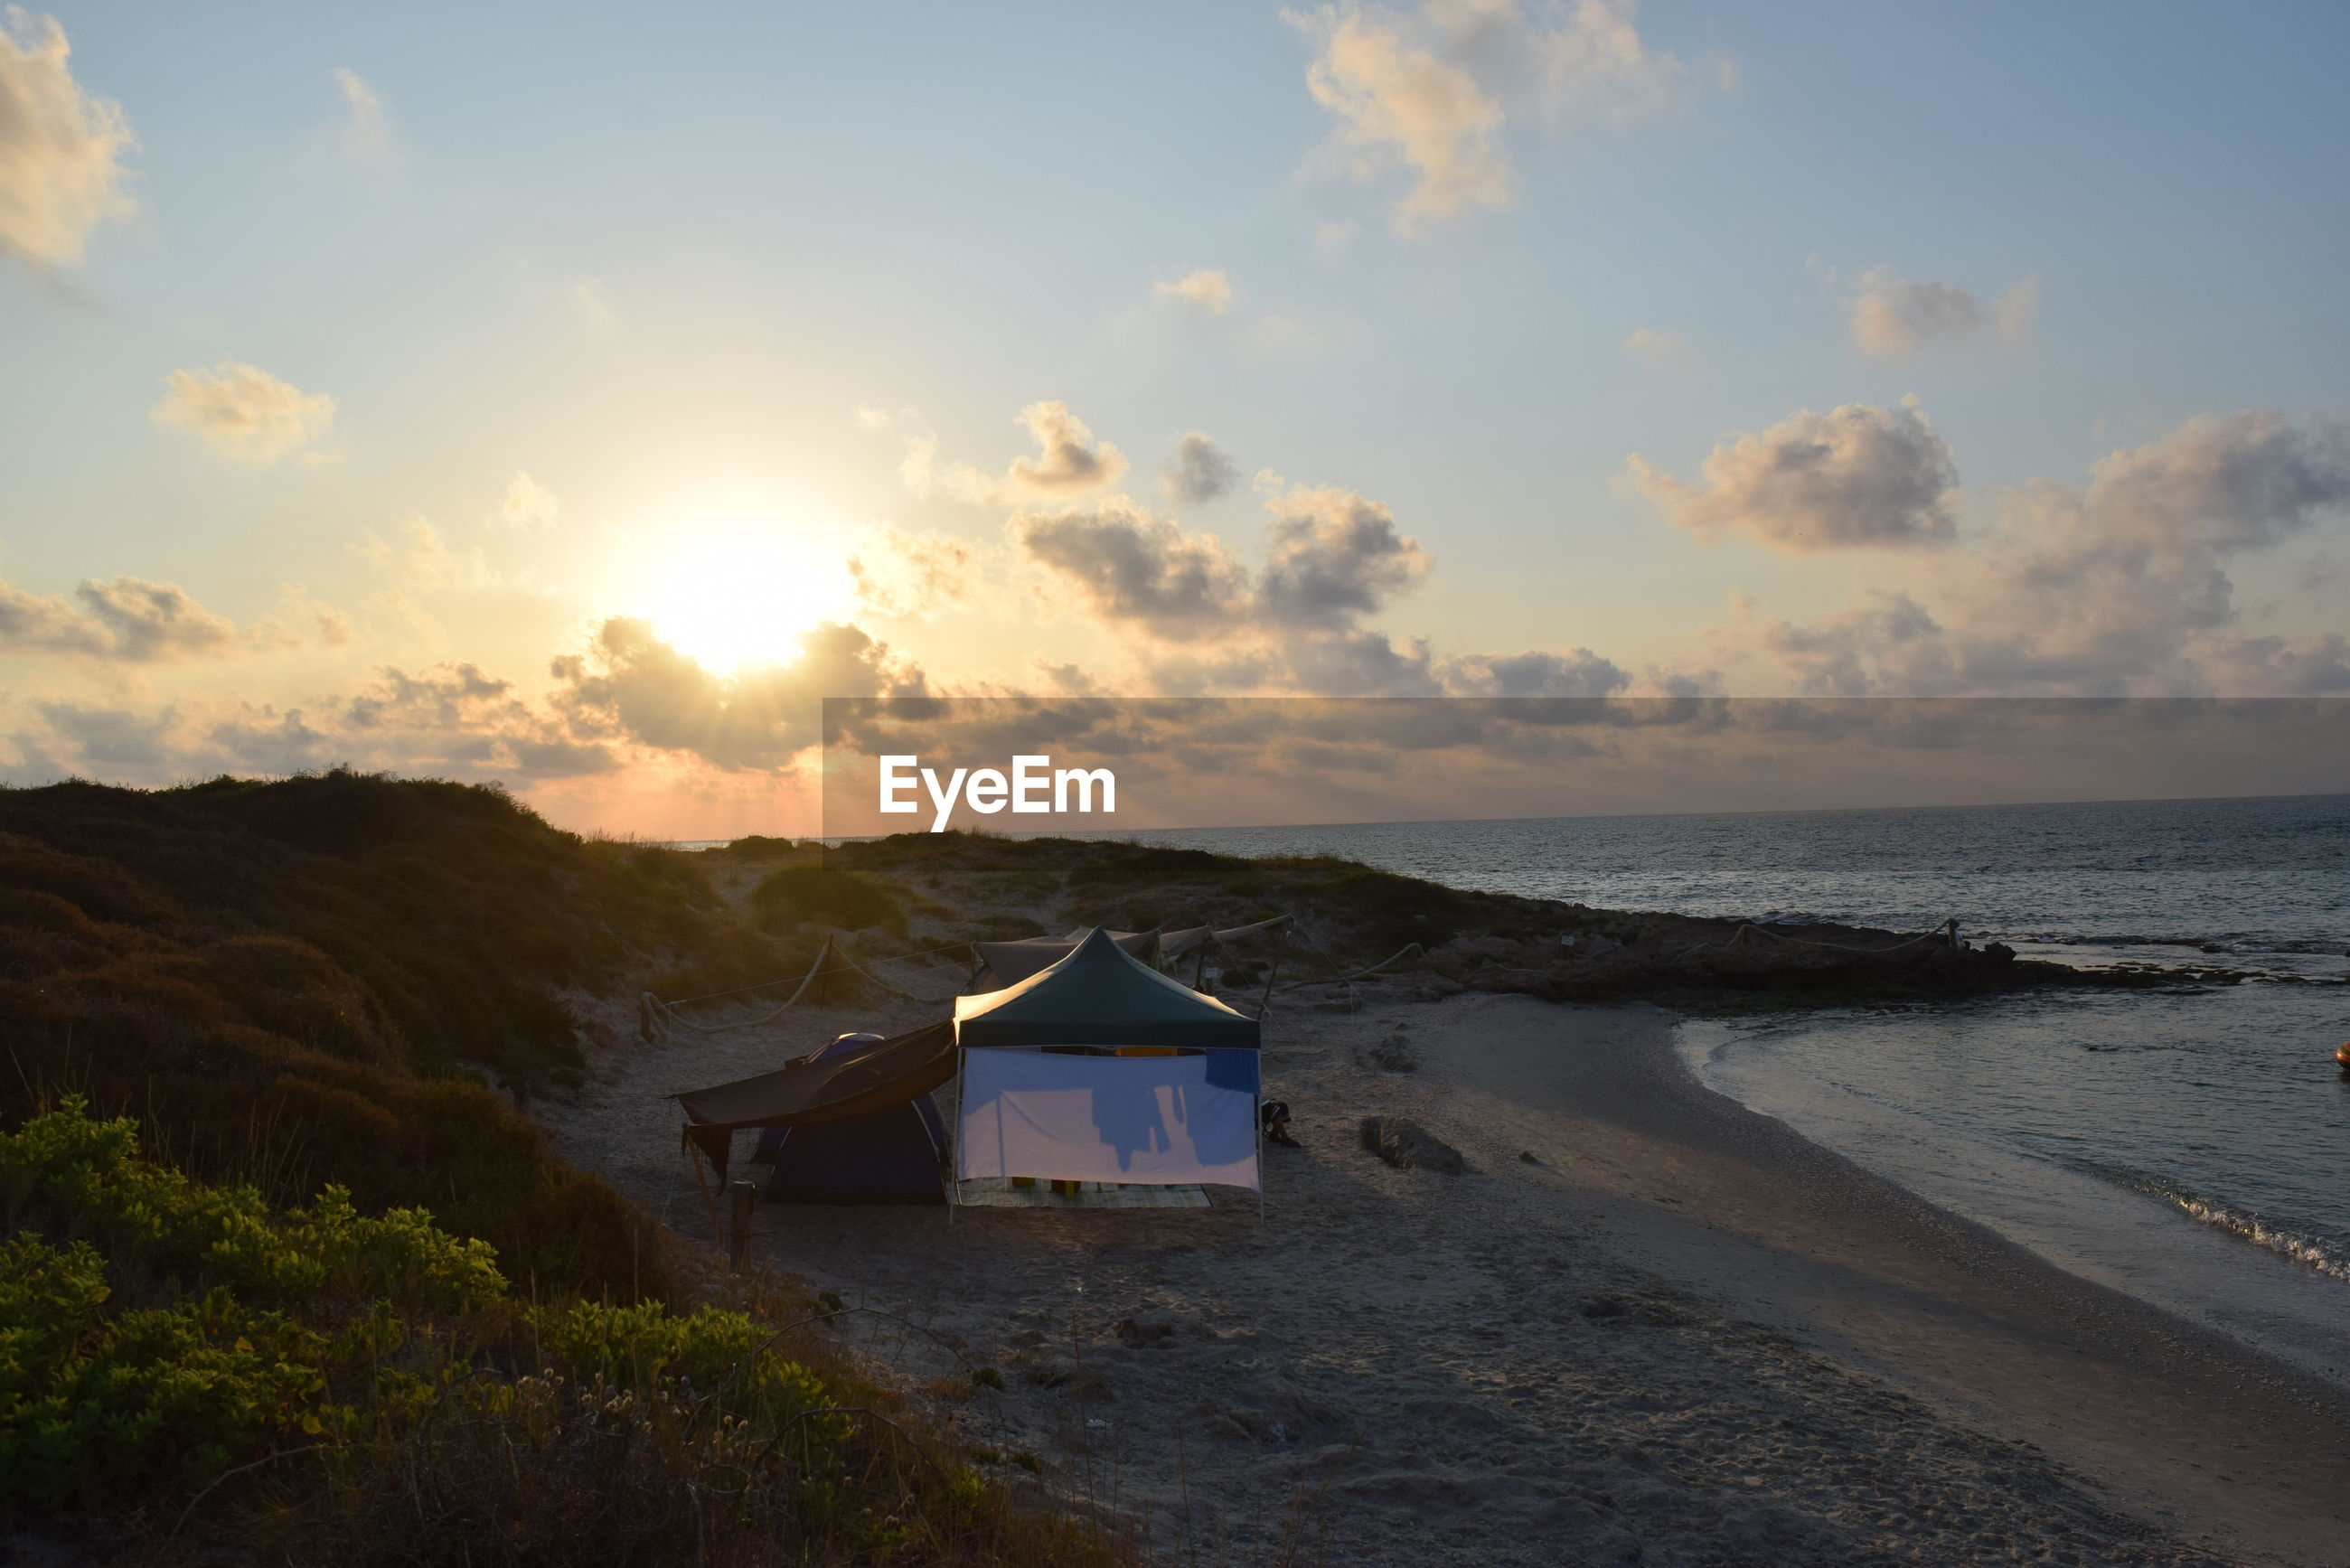 Scenic view tent on beach at sunset